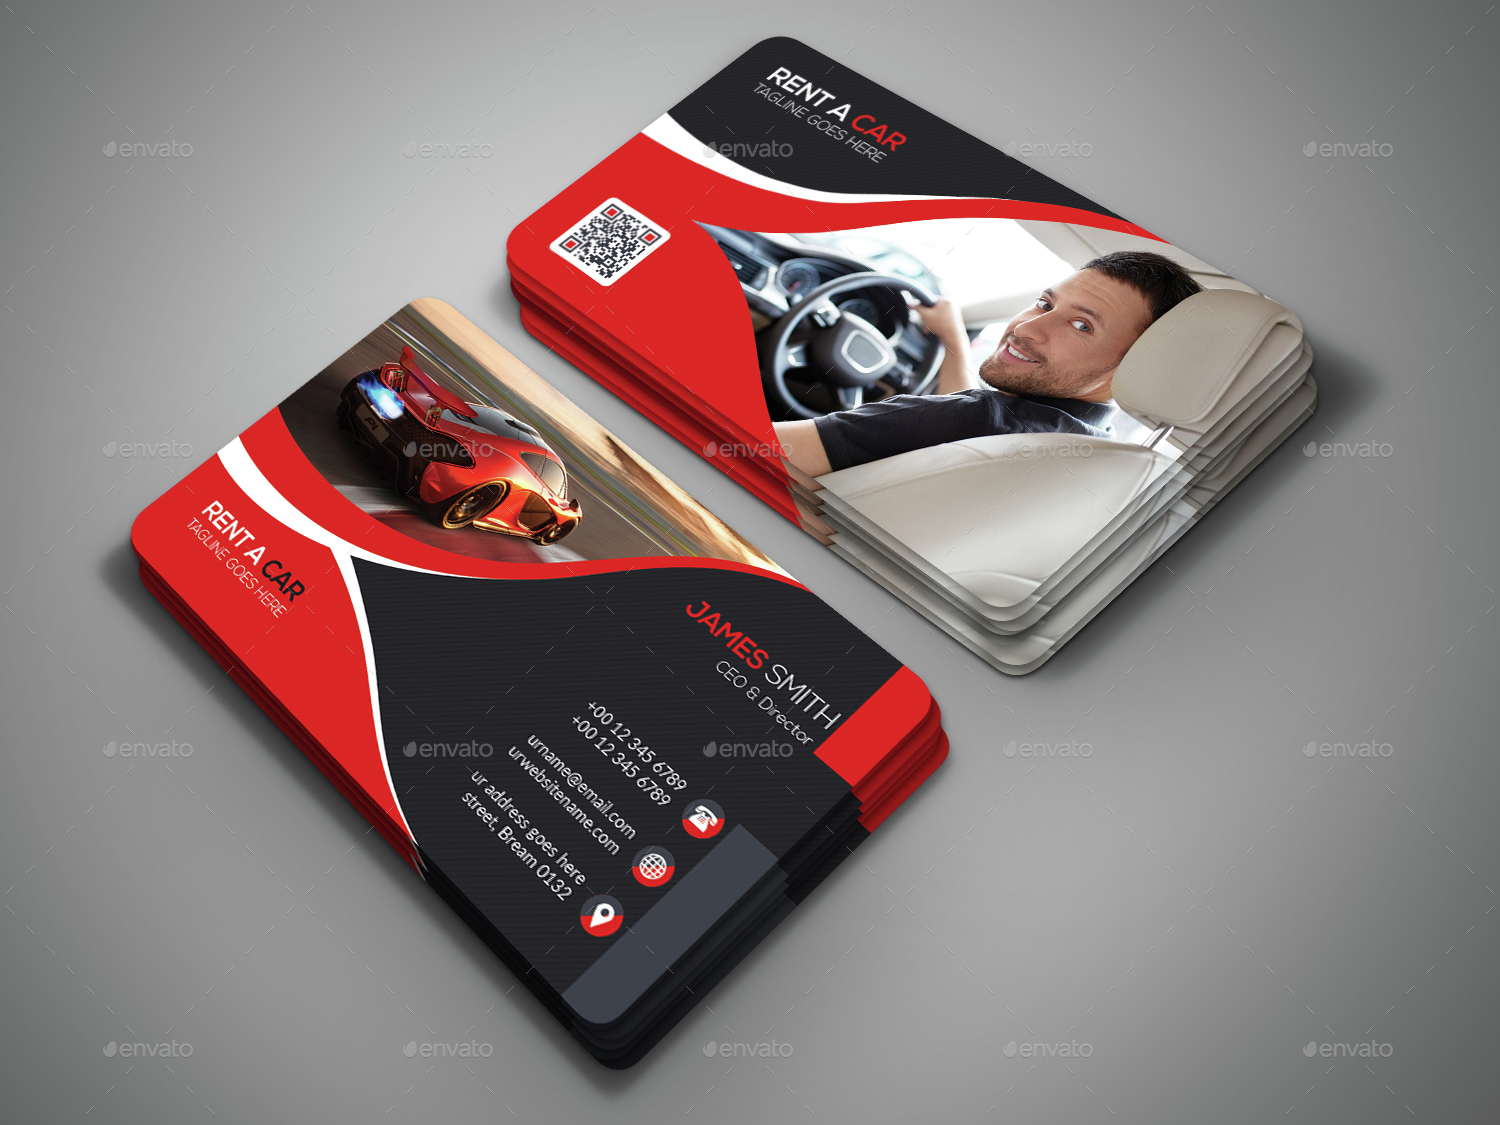 Rent A Car Business Card by DesignSign | GraphicRiver